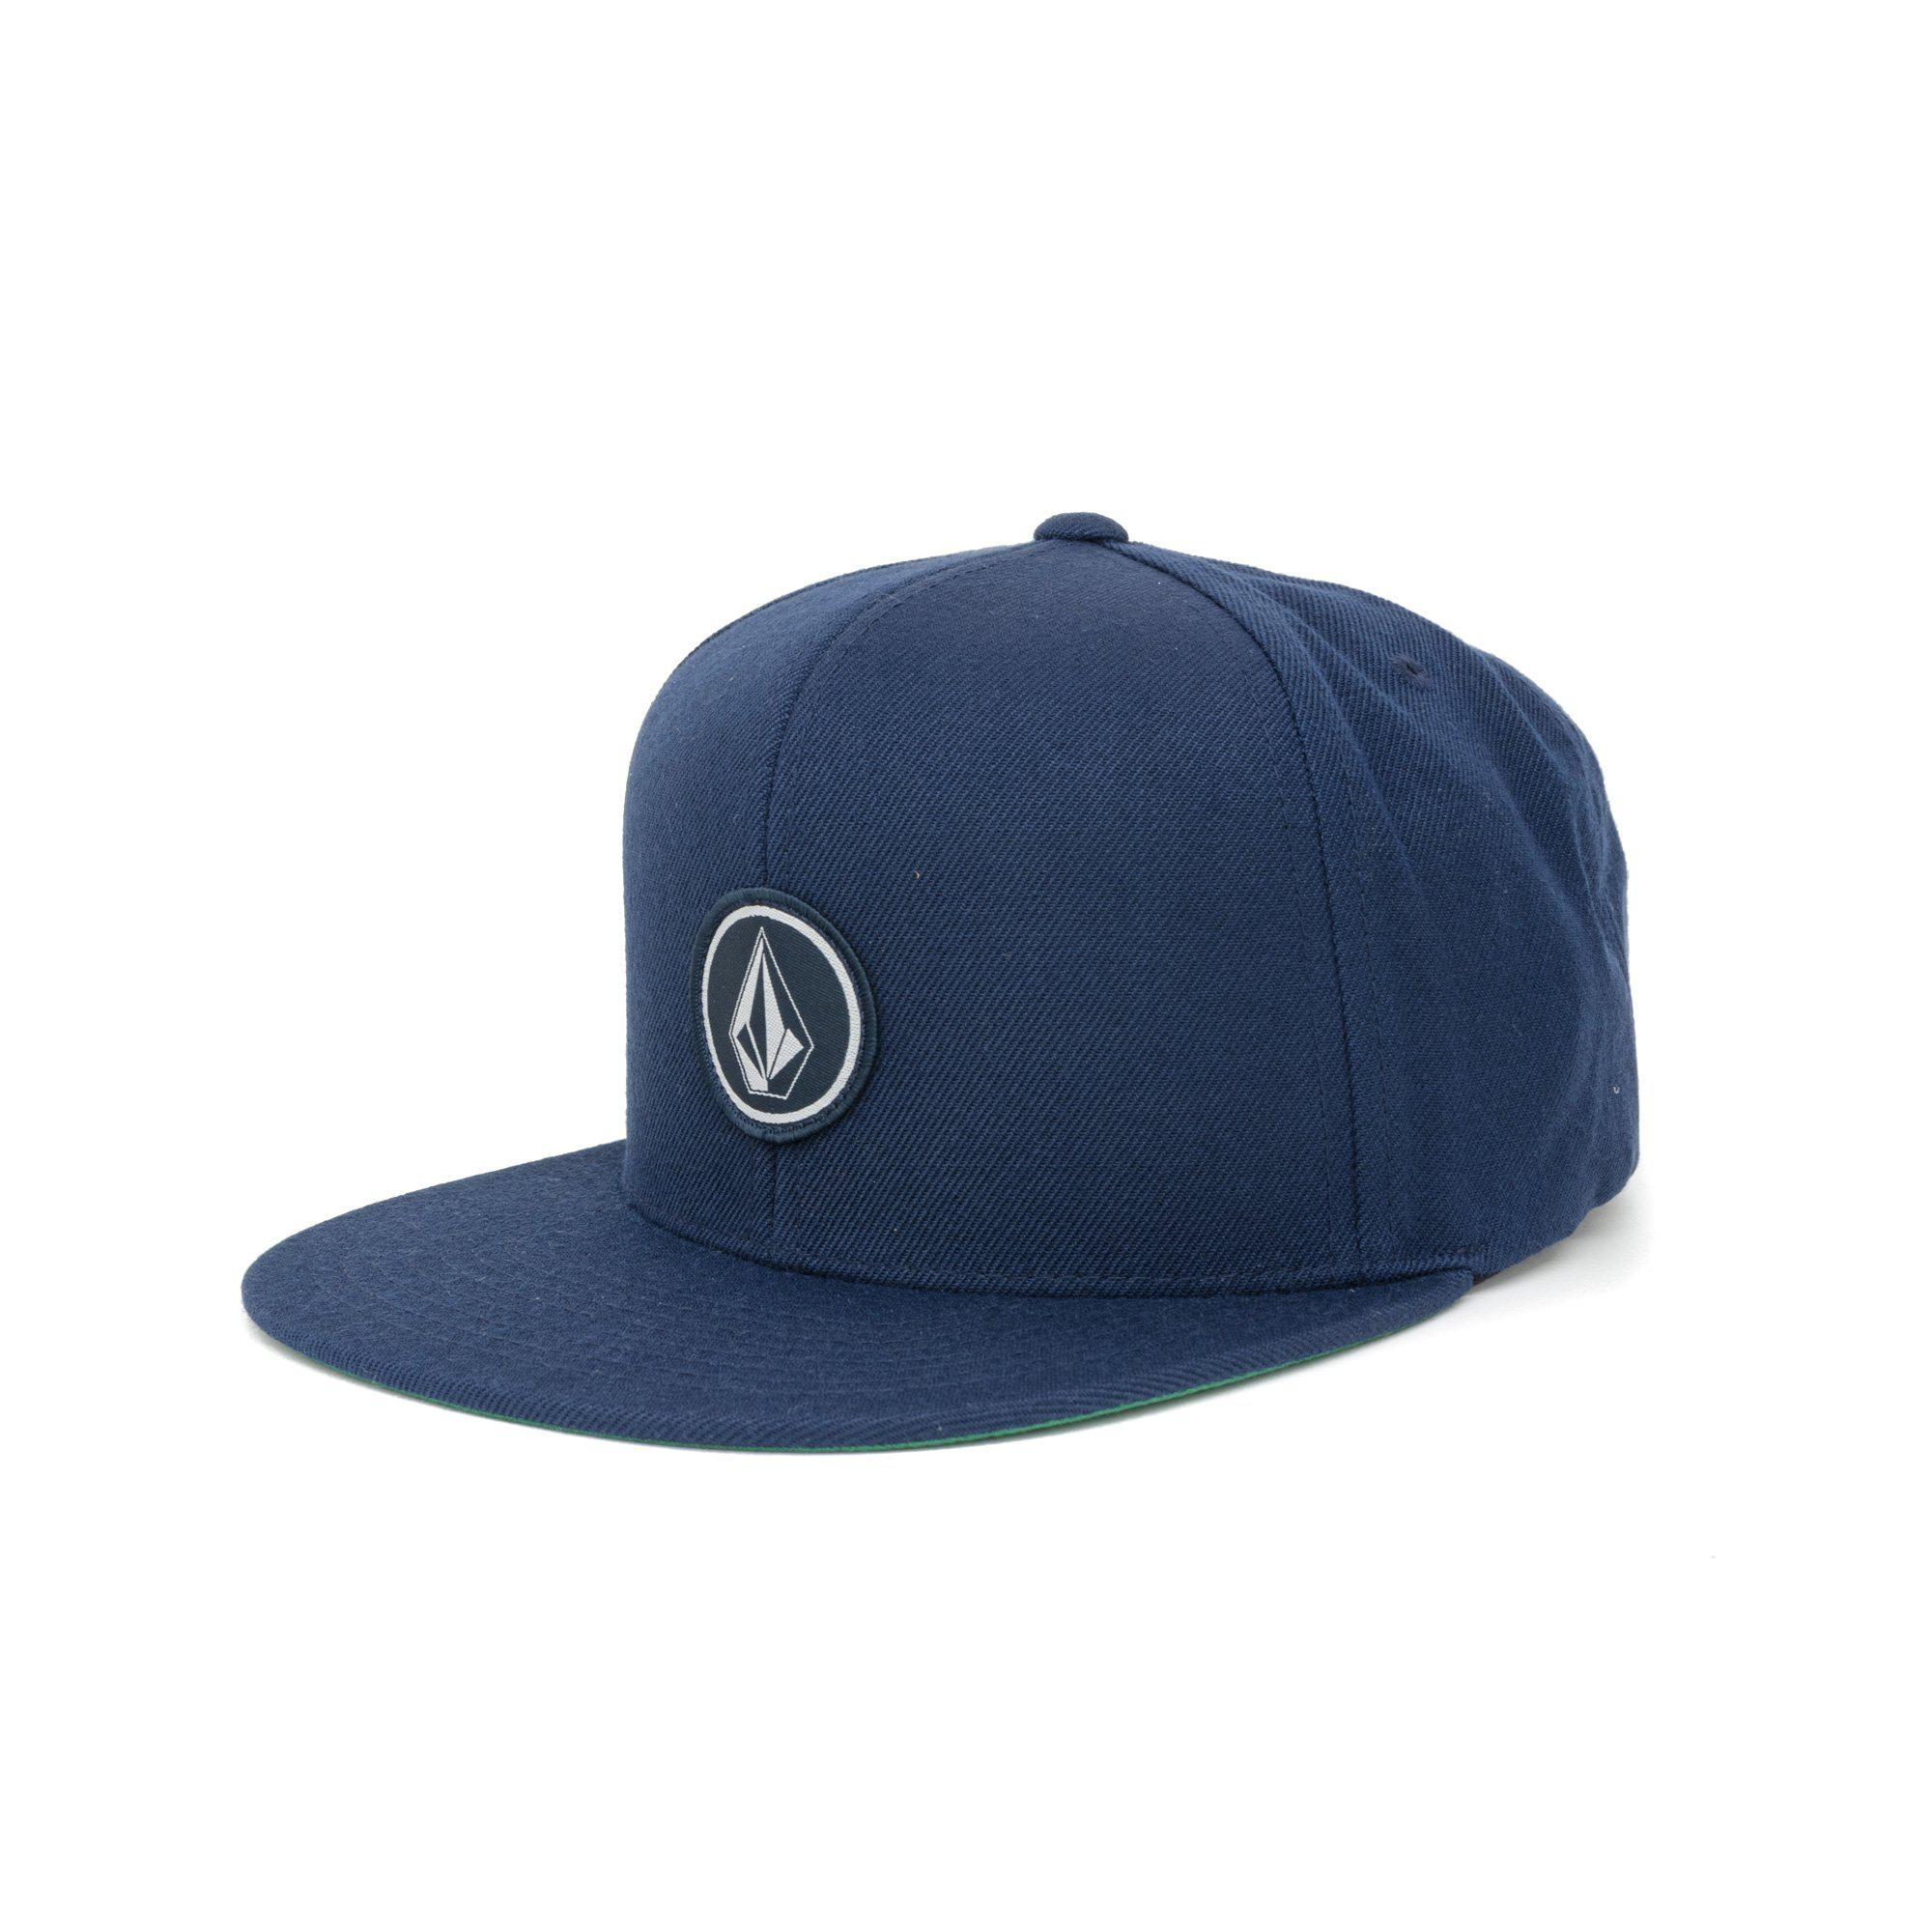 3bdec6b80a5489 Lyst - Volcom Quarter Twill Snapback Cap in Blue for Men